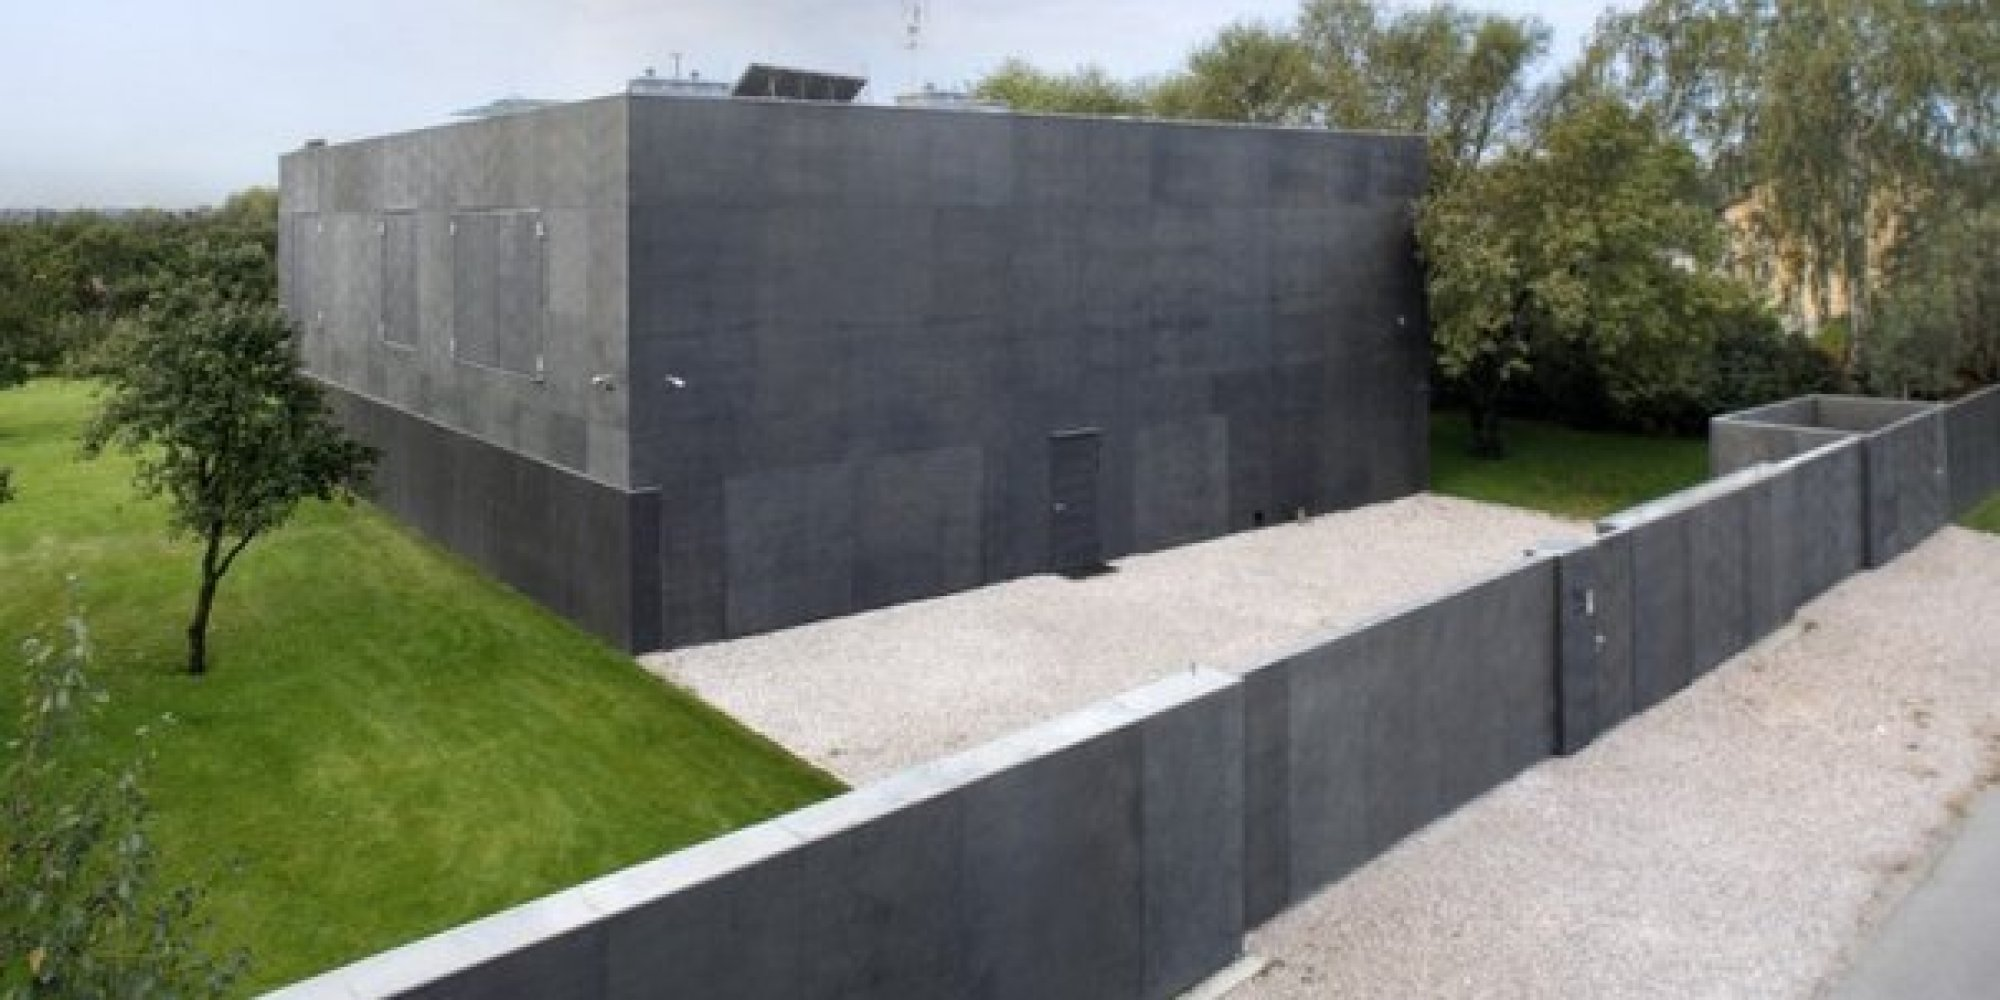 This Real Life Fortress Home Will Save You From The Zombie